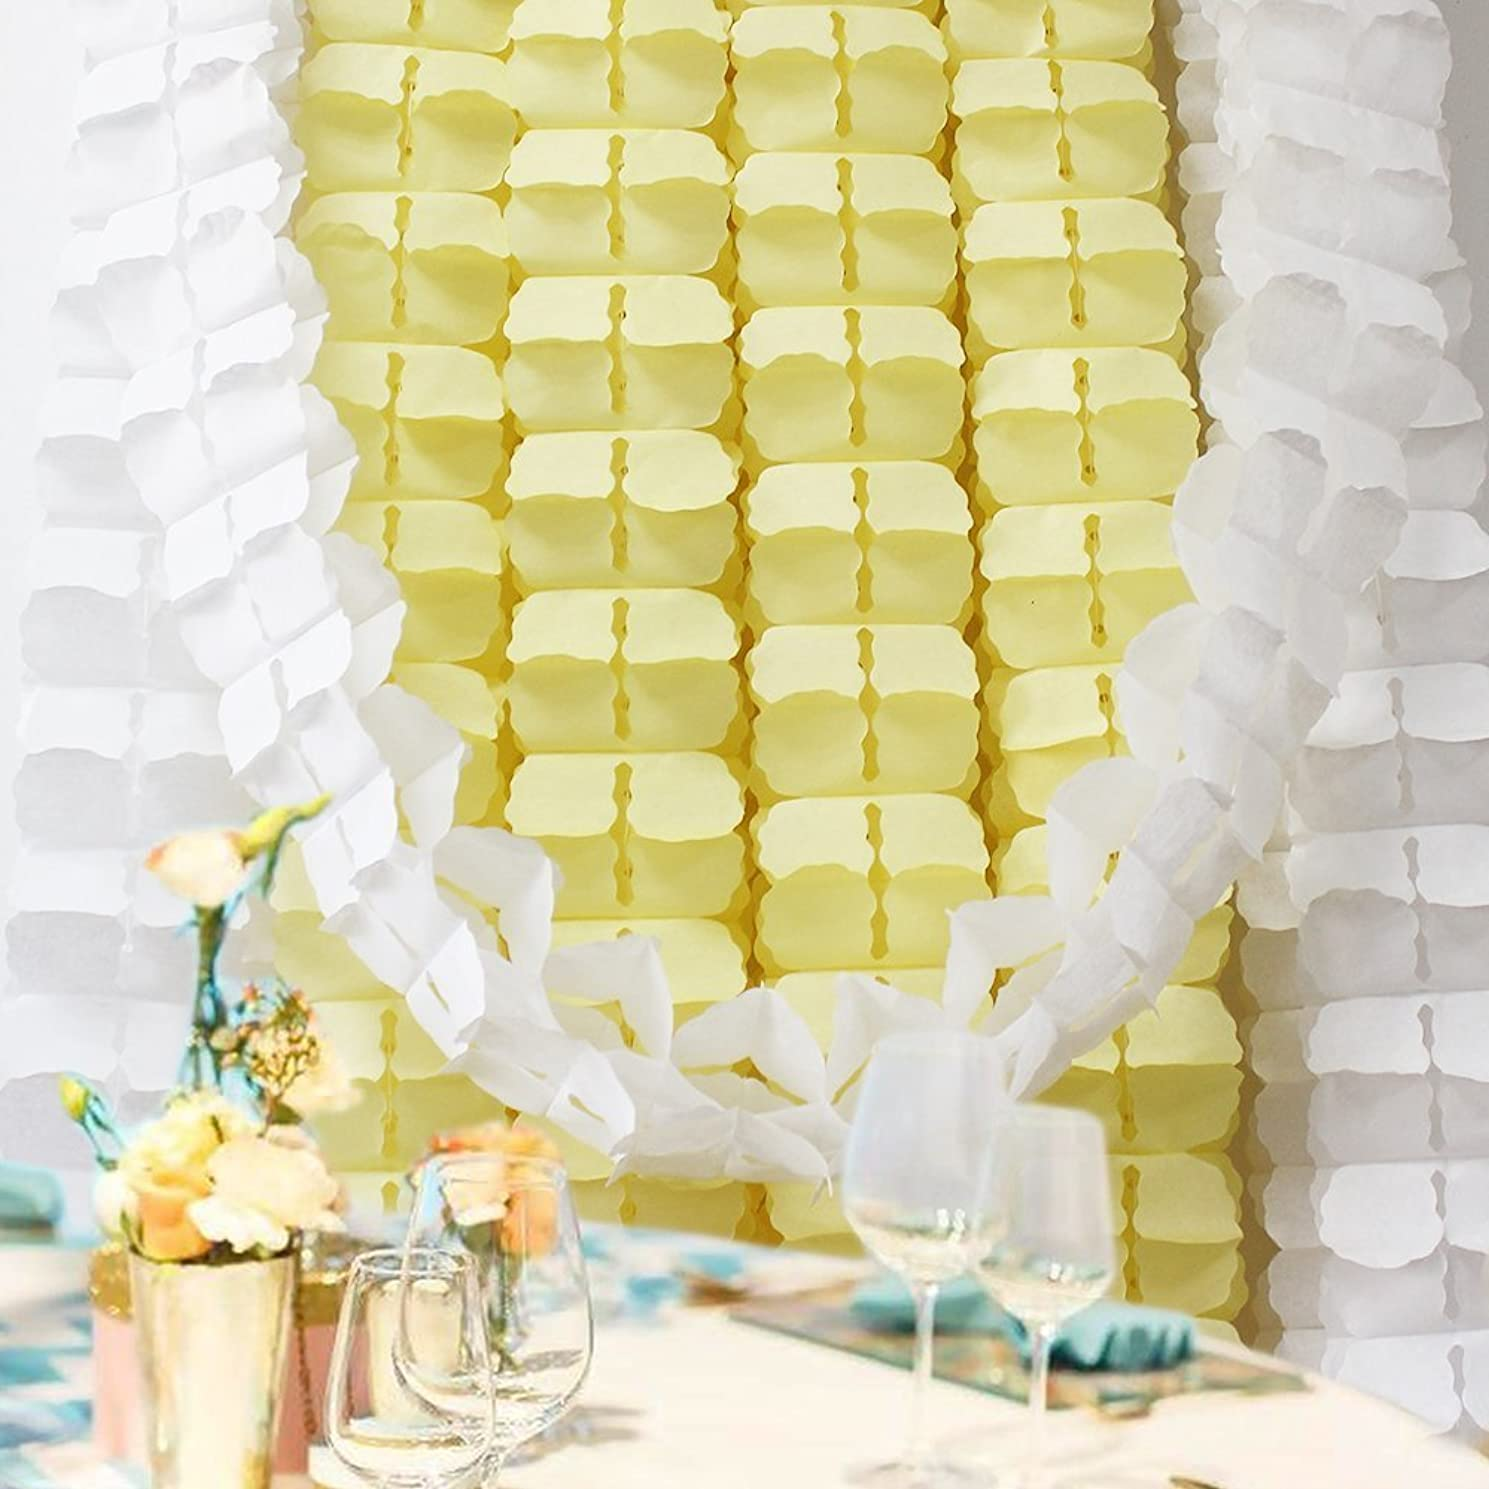 6 Pieces 11.8 Feet 4-Leaf Hanging Clover Garland Tissue Paper Flowers Garland Reusable Party Streamers for Party Decorations Wedding Decorations (Yellow)